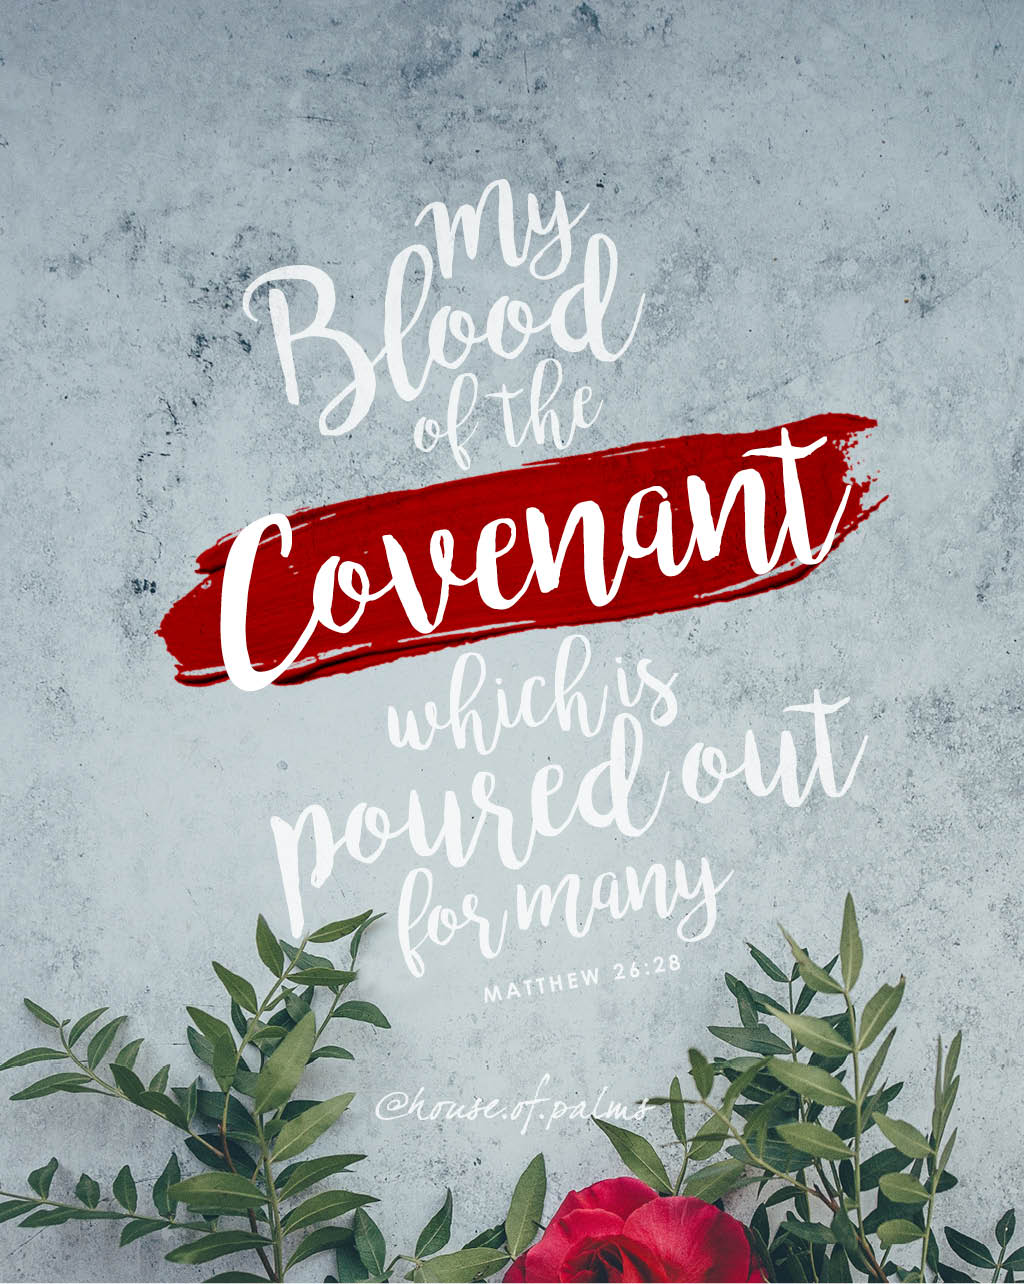 Why does the Bible talk so much about blood?